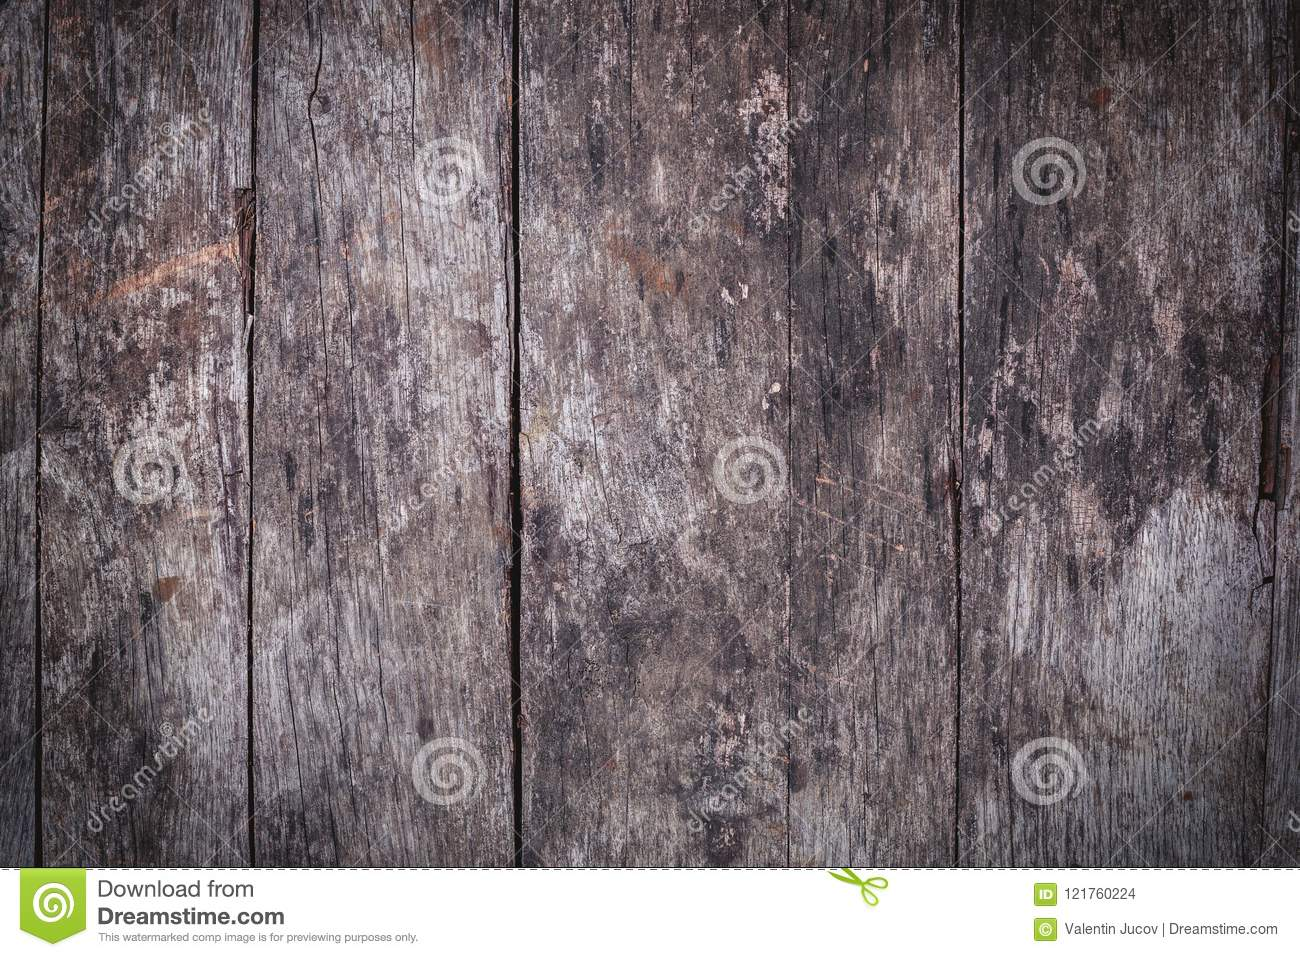 Old wooden background or texture. Wood table or floor.